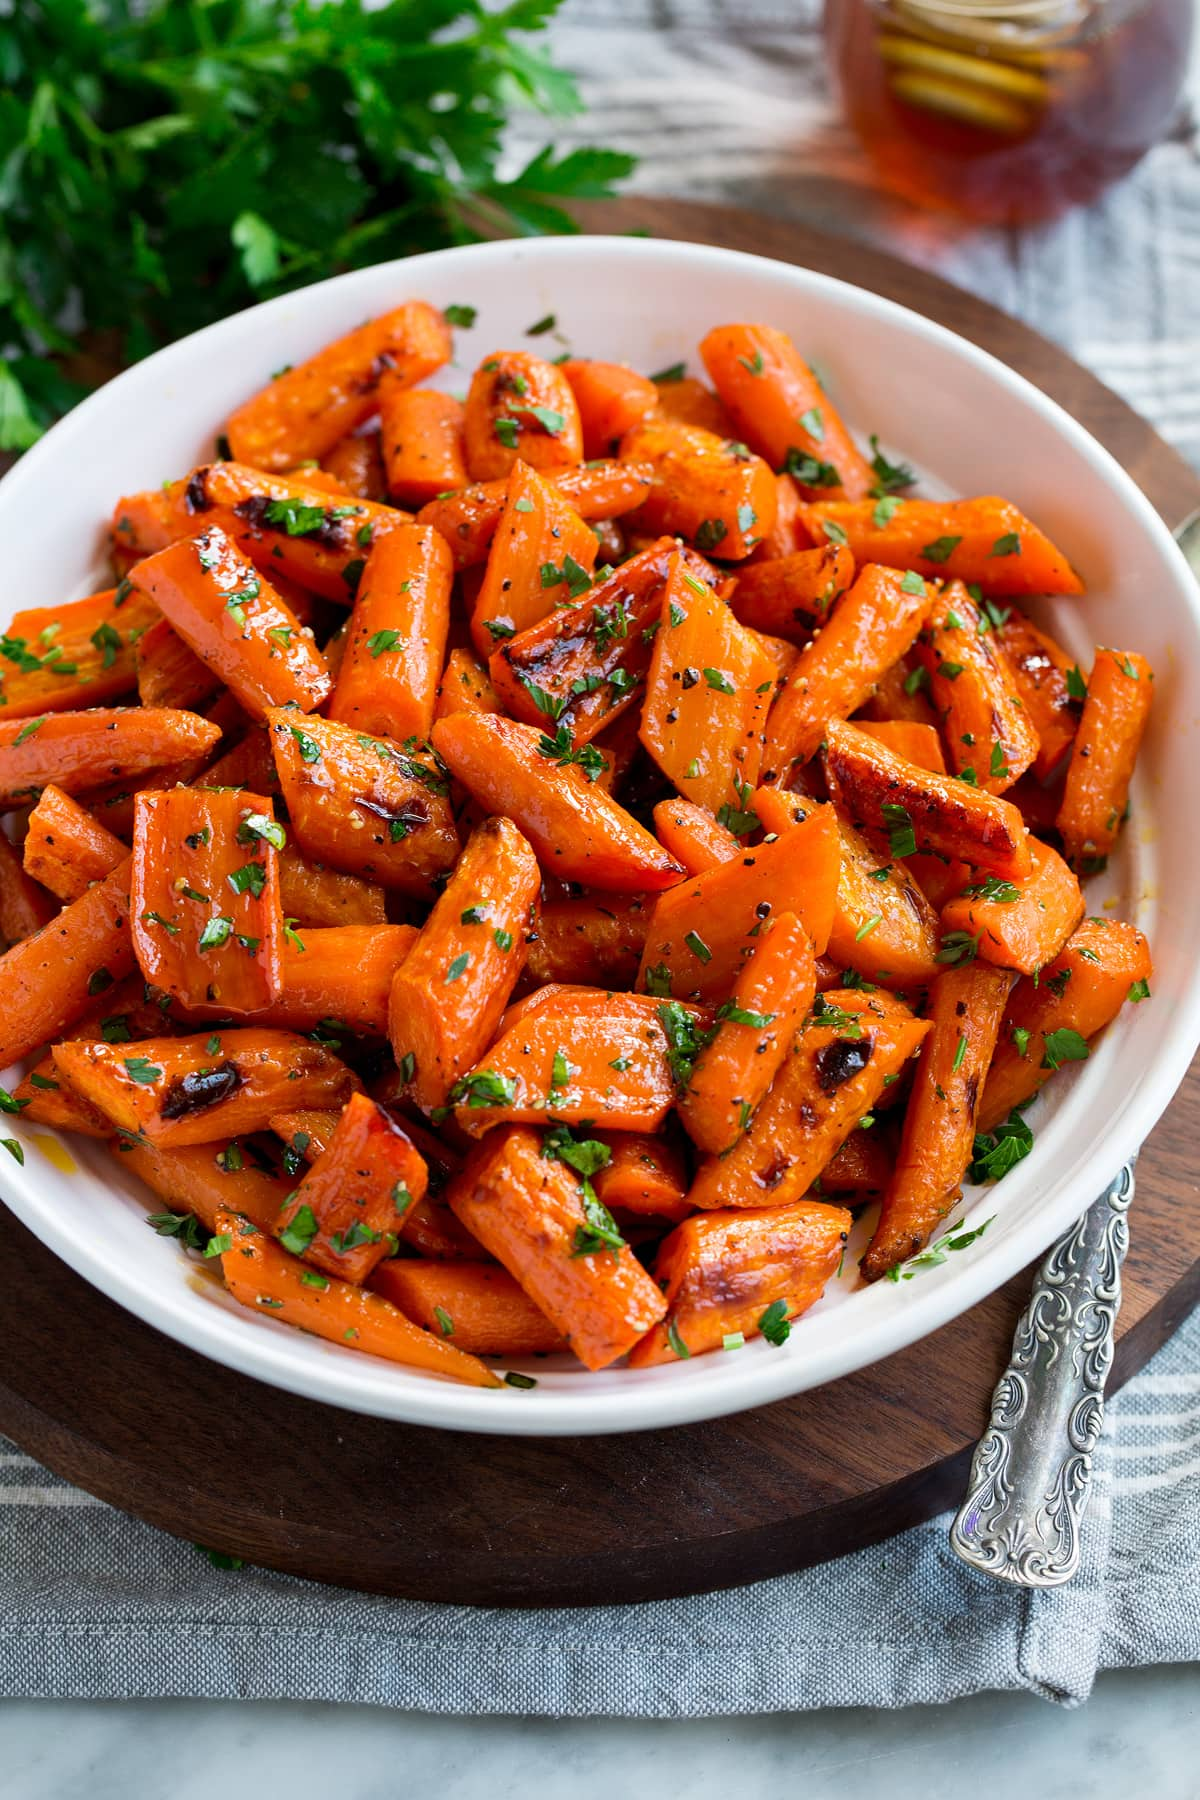 Photo: Roasted carrots in a white serving bowl. Carrots are garnished with parsley with a bunch in the background. Bowl is resting on a wooden platter and a grey cloth.